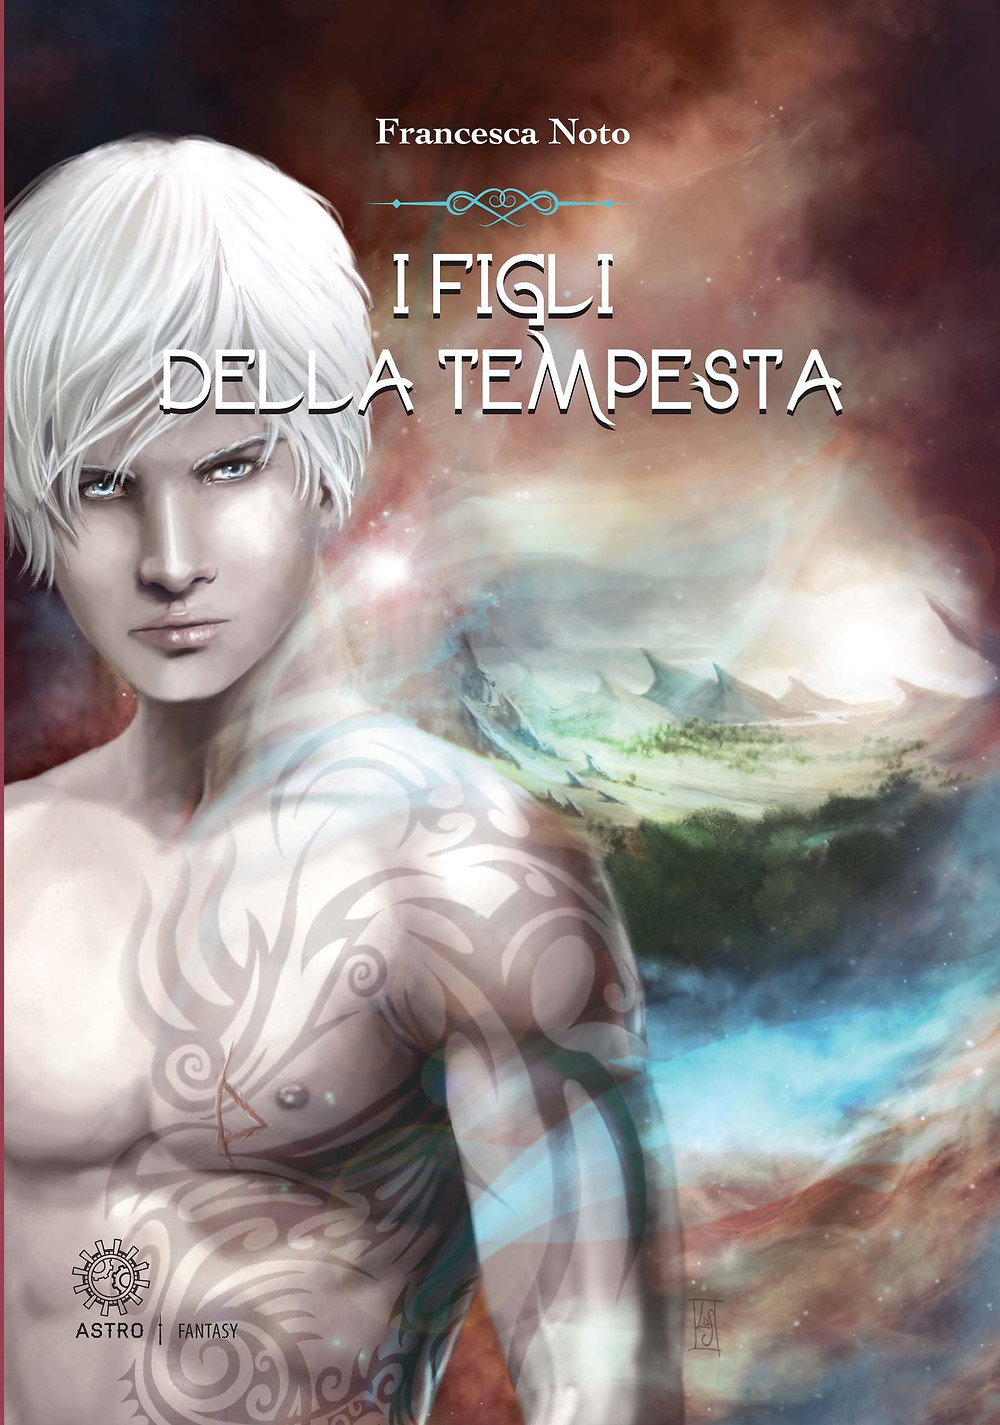 Italian Cover of Sons of Storm by Francesca Noto, soon to be released in English by Luna Press Publishing